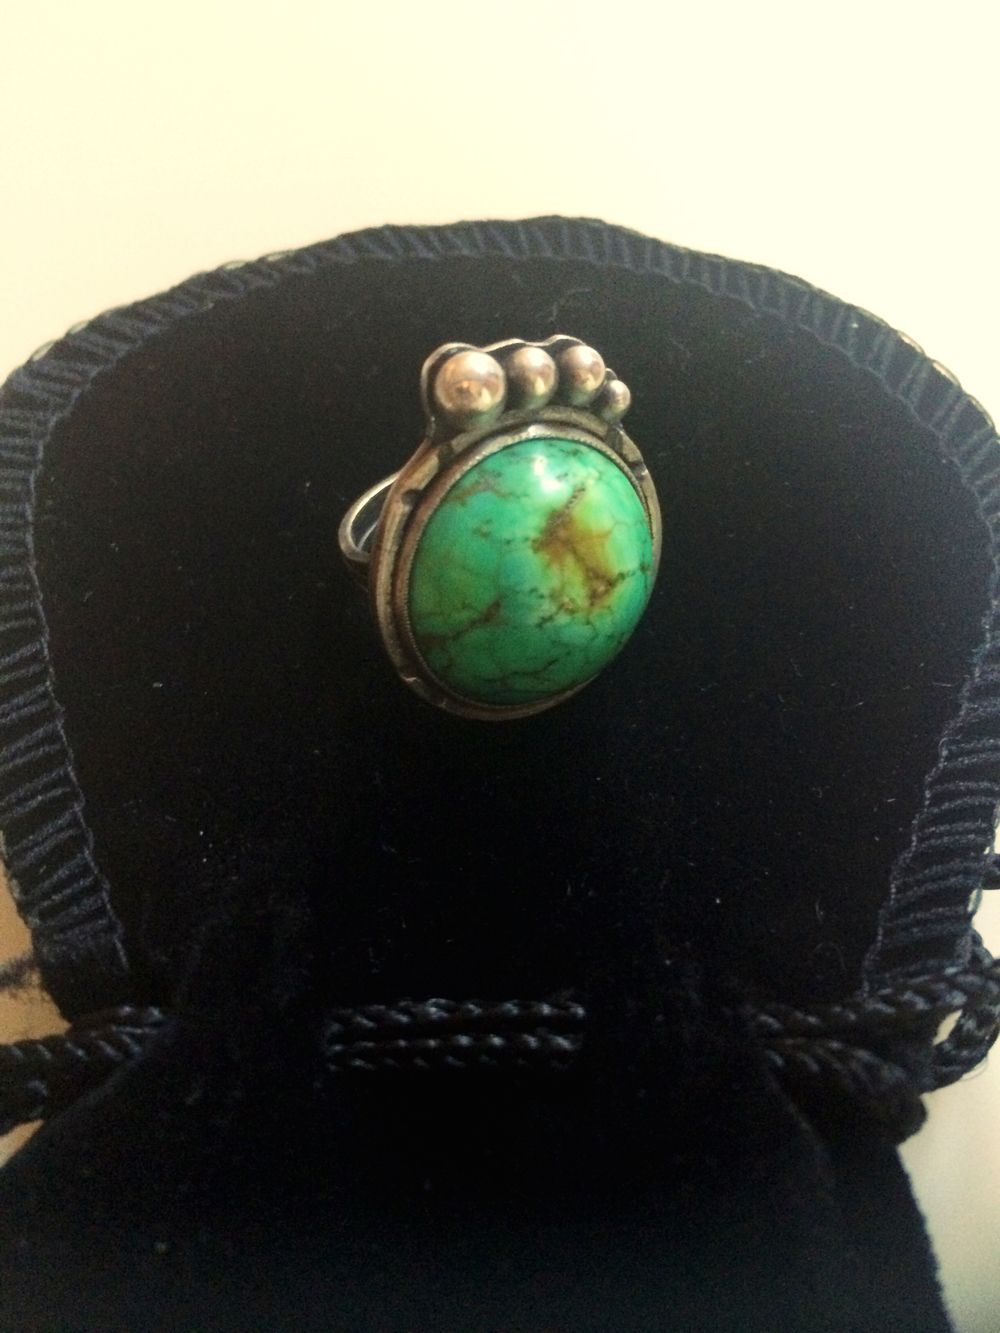 Where are my turquoise fans at?! 3 Moons Jewelry makes the most unique and beautiful pieces. If you are like me, you love and appreciate a turquoise accessory! All pieces are custom so you can request this piece by contacting them or choose something different from what they currently have in stock! *Check them out and get some stunners for yourself: www.3moonsjewelry.com  Stay Stylish Chicago, Katie